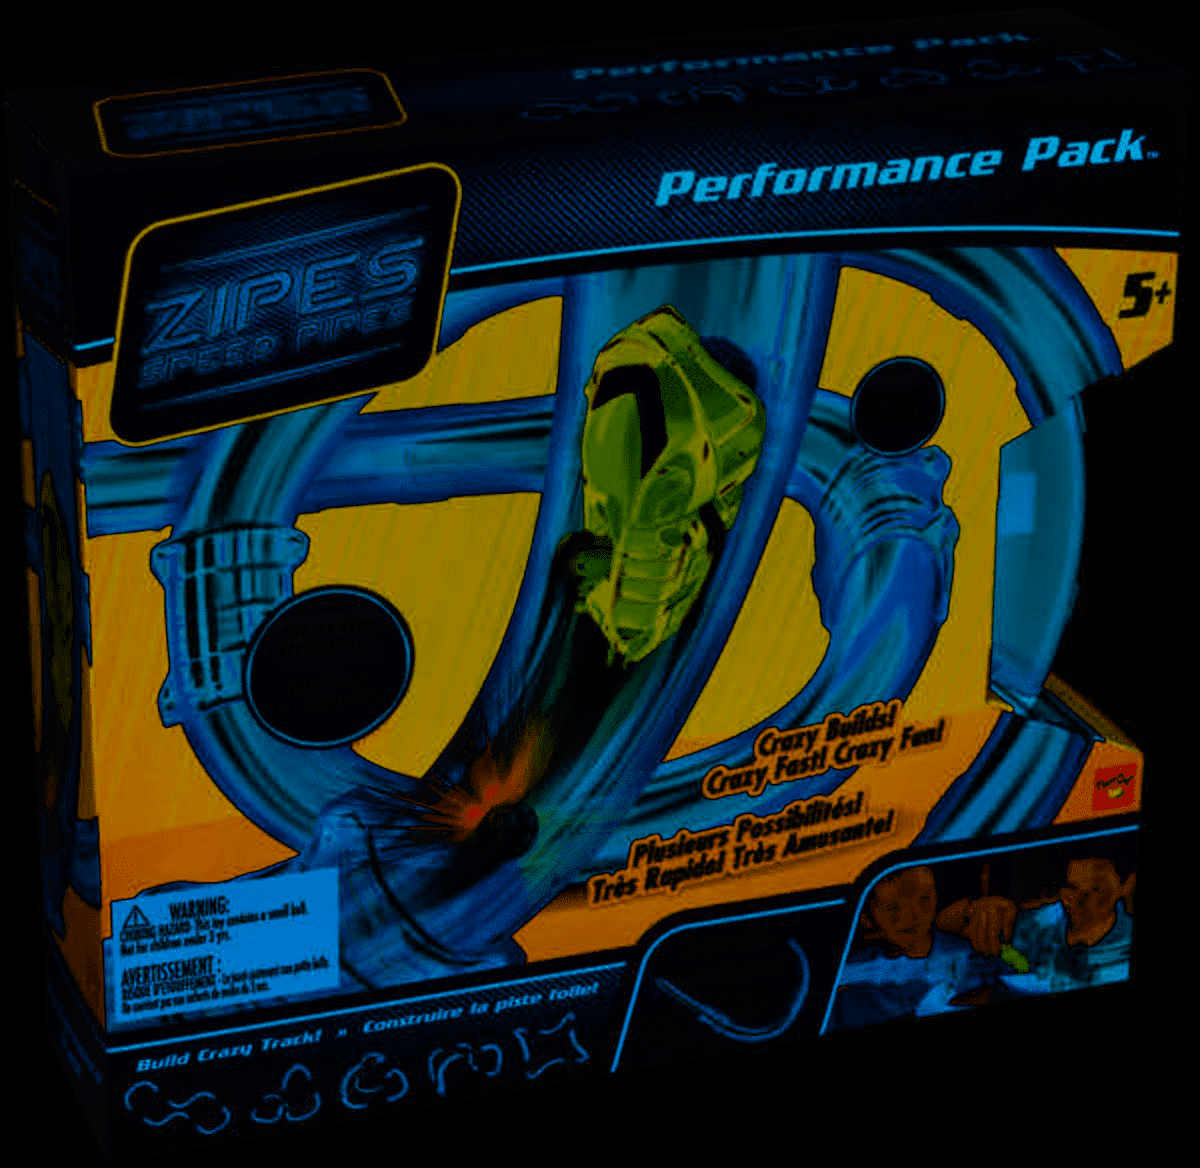 Zipes Performance Pack